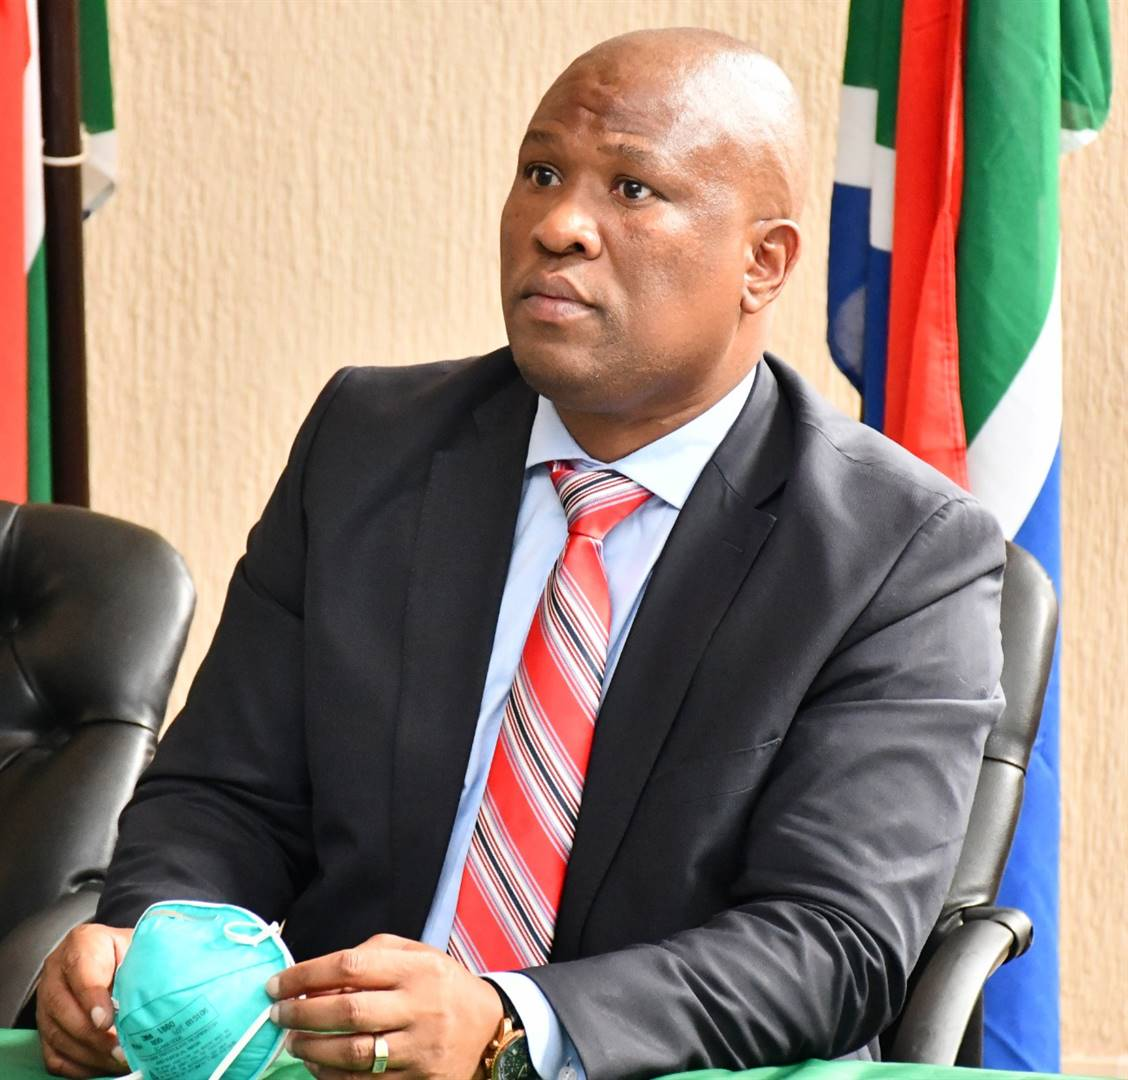 Oscar Mabuyane contends that Magashule has a political score to settle with him. Photo: Supplied/Archive